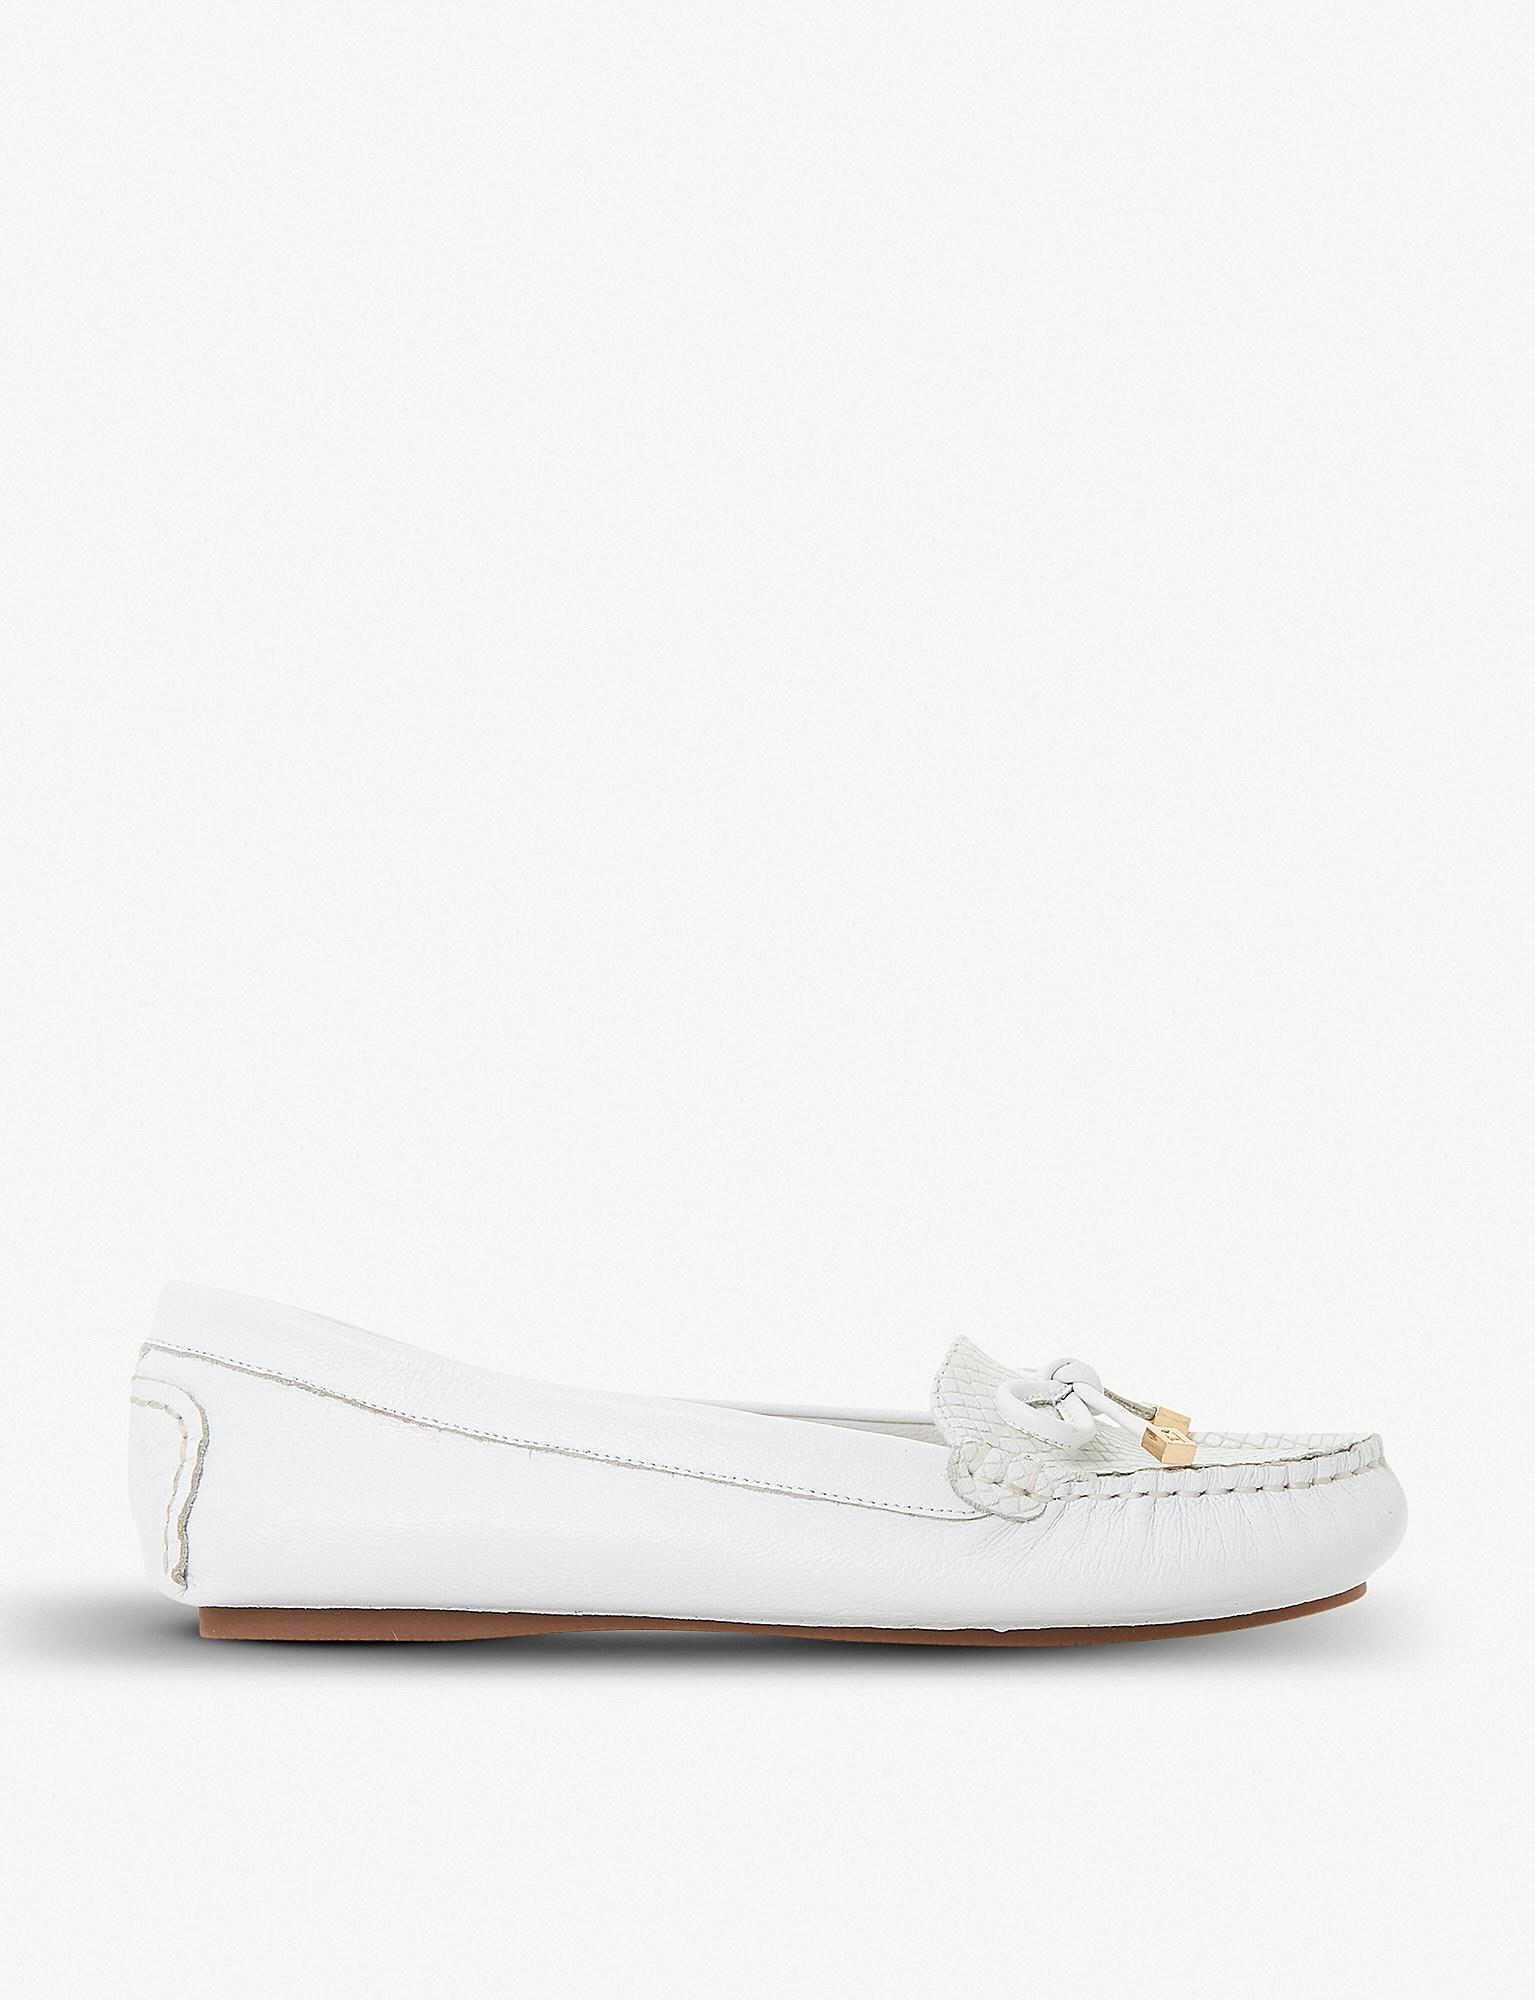 White leather 'Geenova' loafers cheap sale popular geniue stockist online store how much sale online very cheap oQToYmr4ds